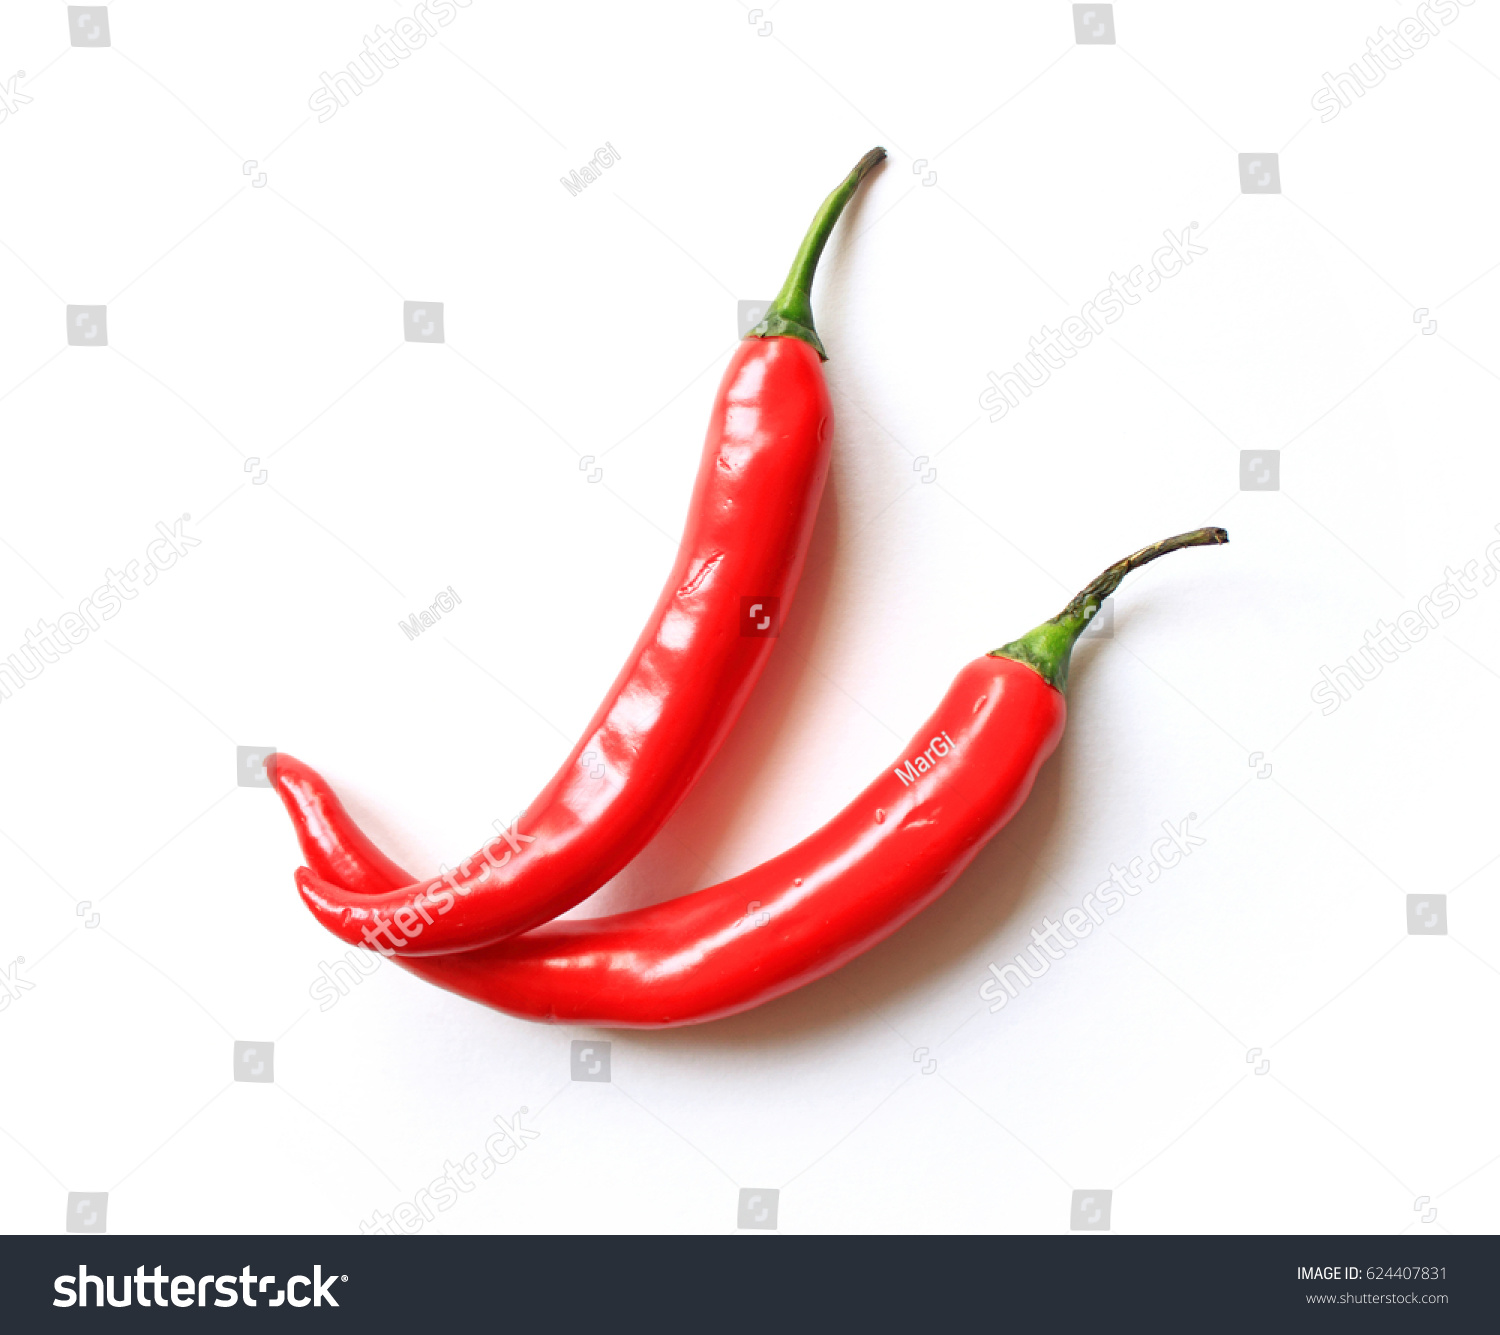 Red Chilli Pepper On White Background Stock Photo (Royalty Free ...